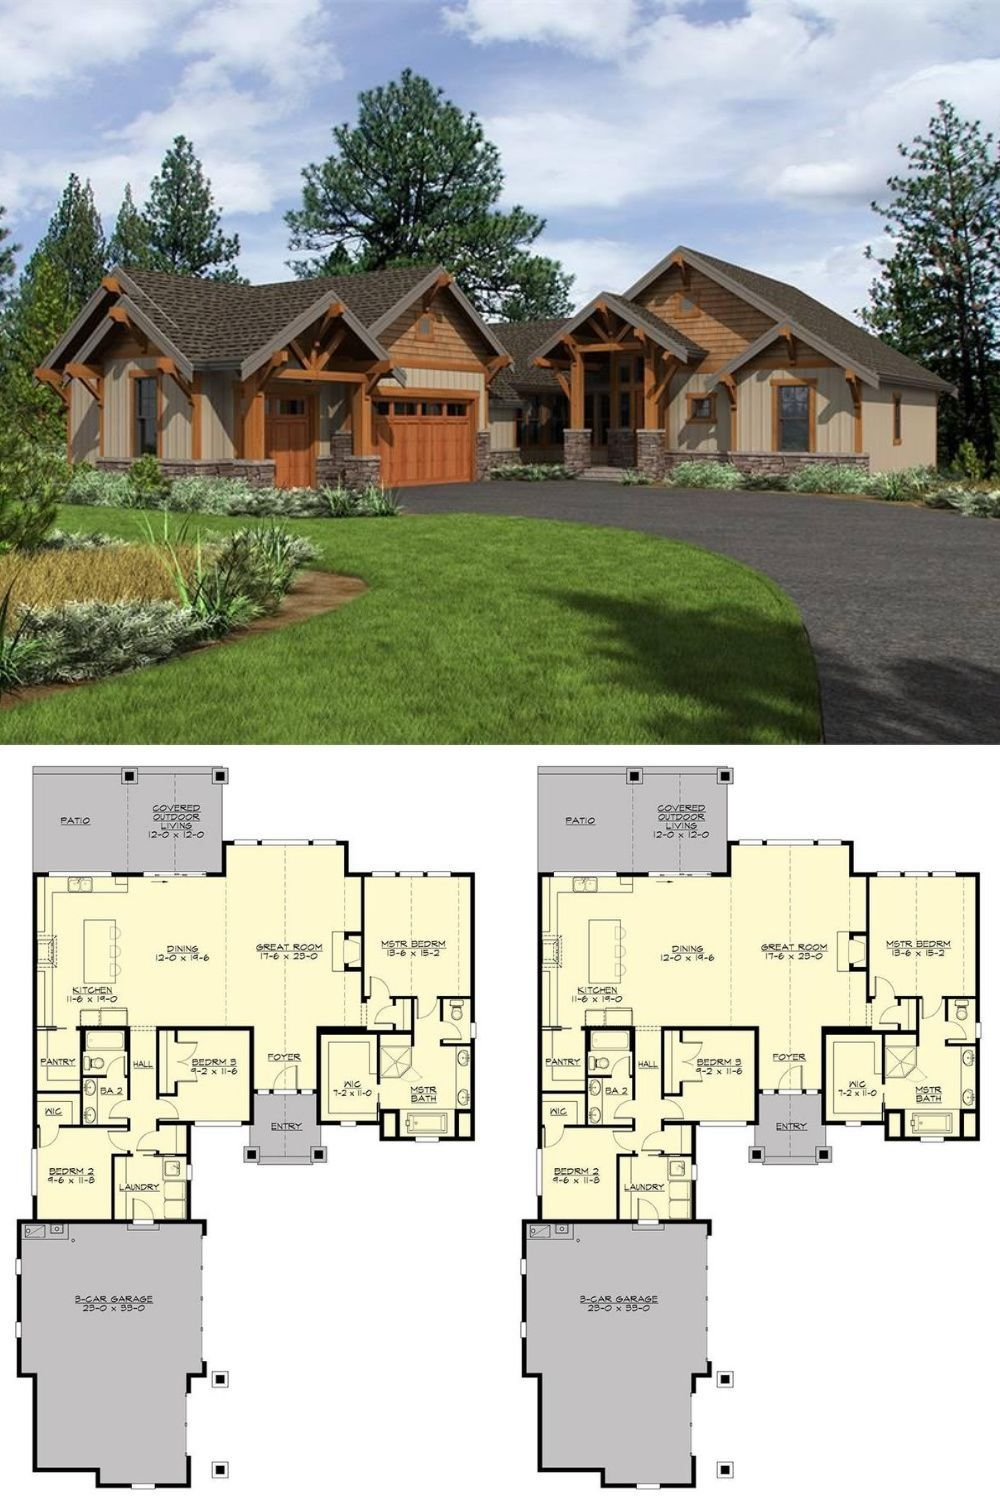 Appealing Small Mountain House Plans On Charming Single Story 3 Bedroom Carbonado Ranch Floor Plan On Small Mountain House Plans